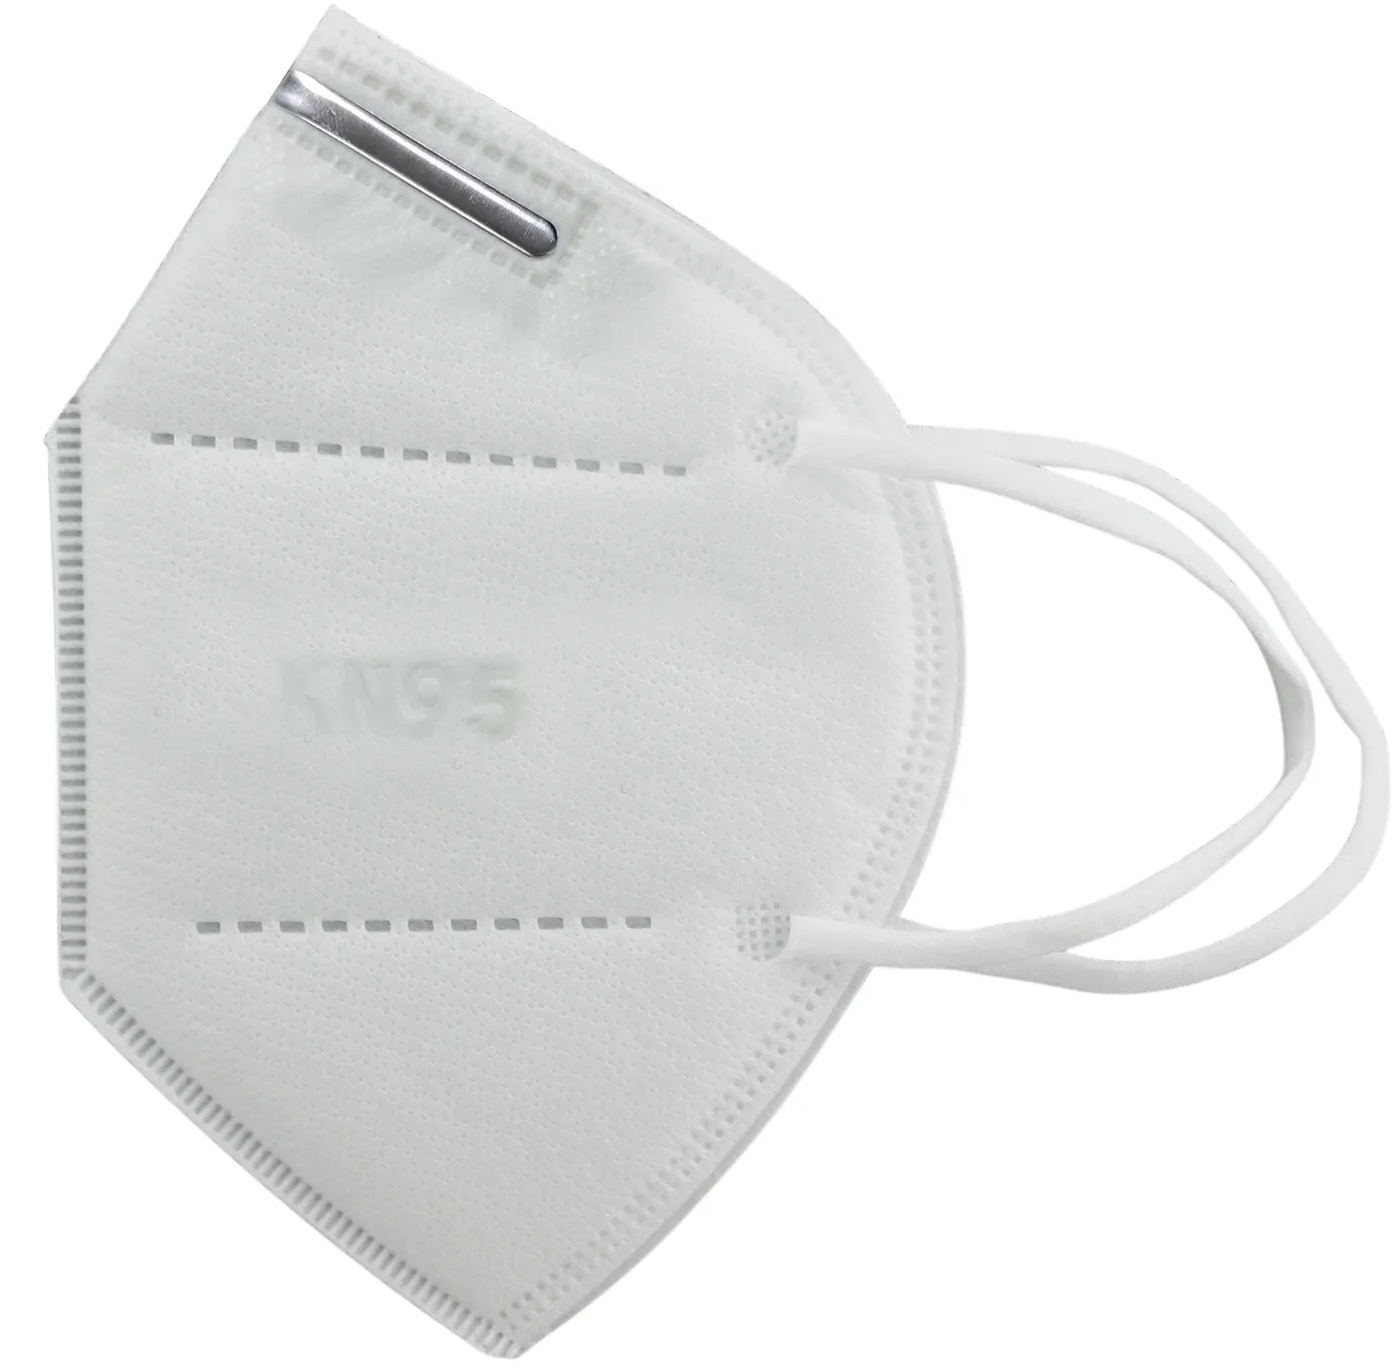 3-ply-disposable-kn95-face-mask-with-visible-nose-clip-35-per-box-by-odyssey.jpeg